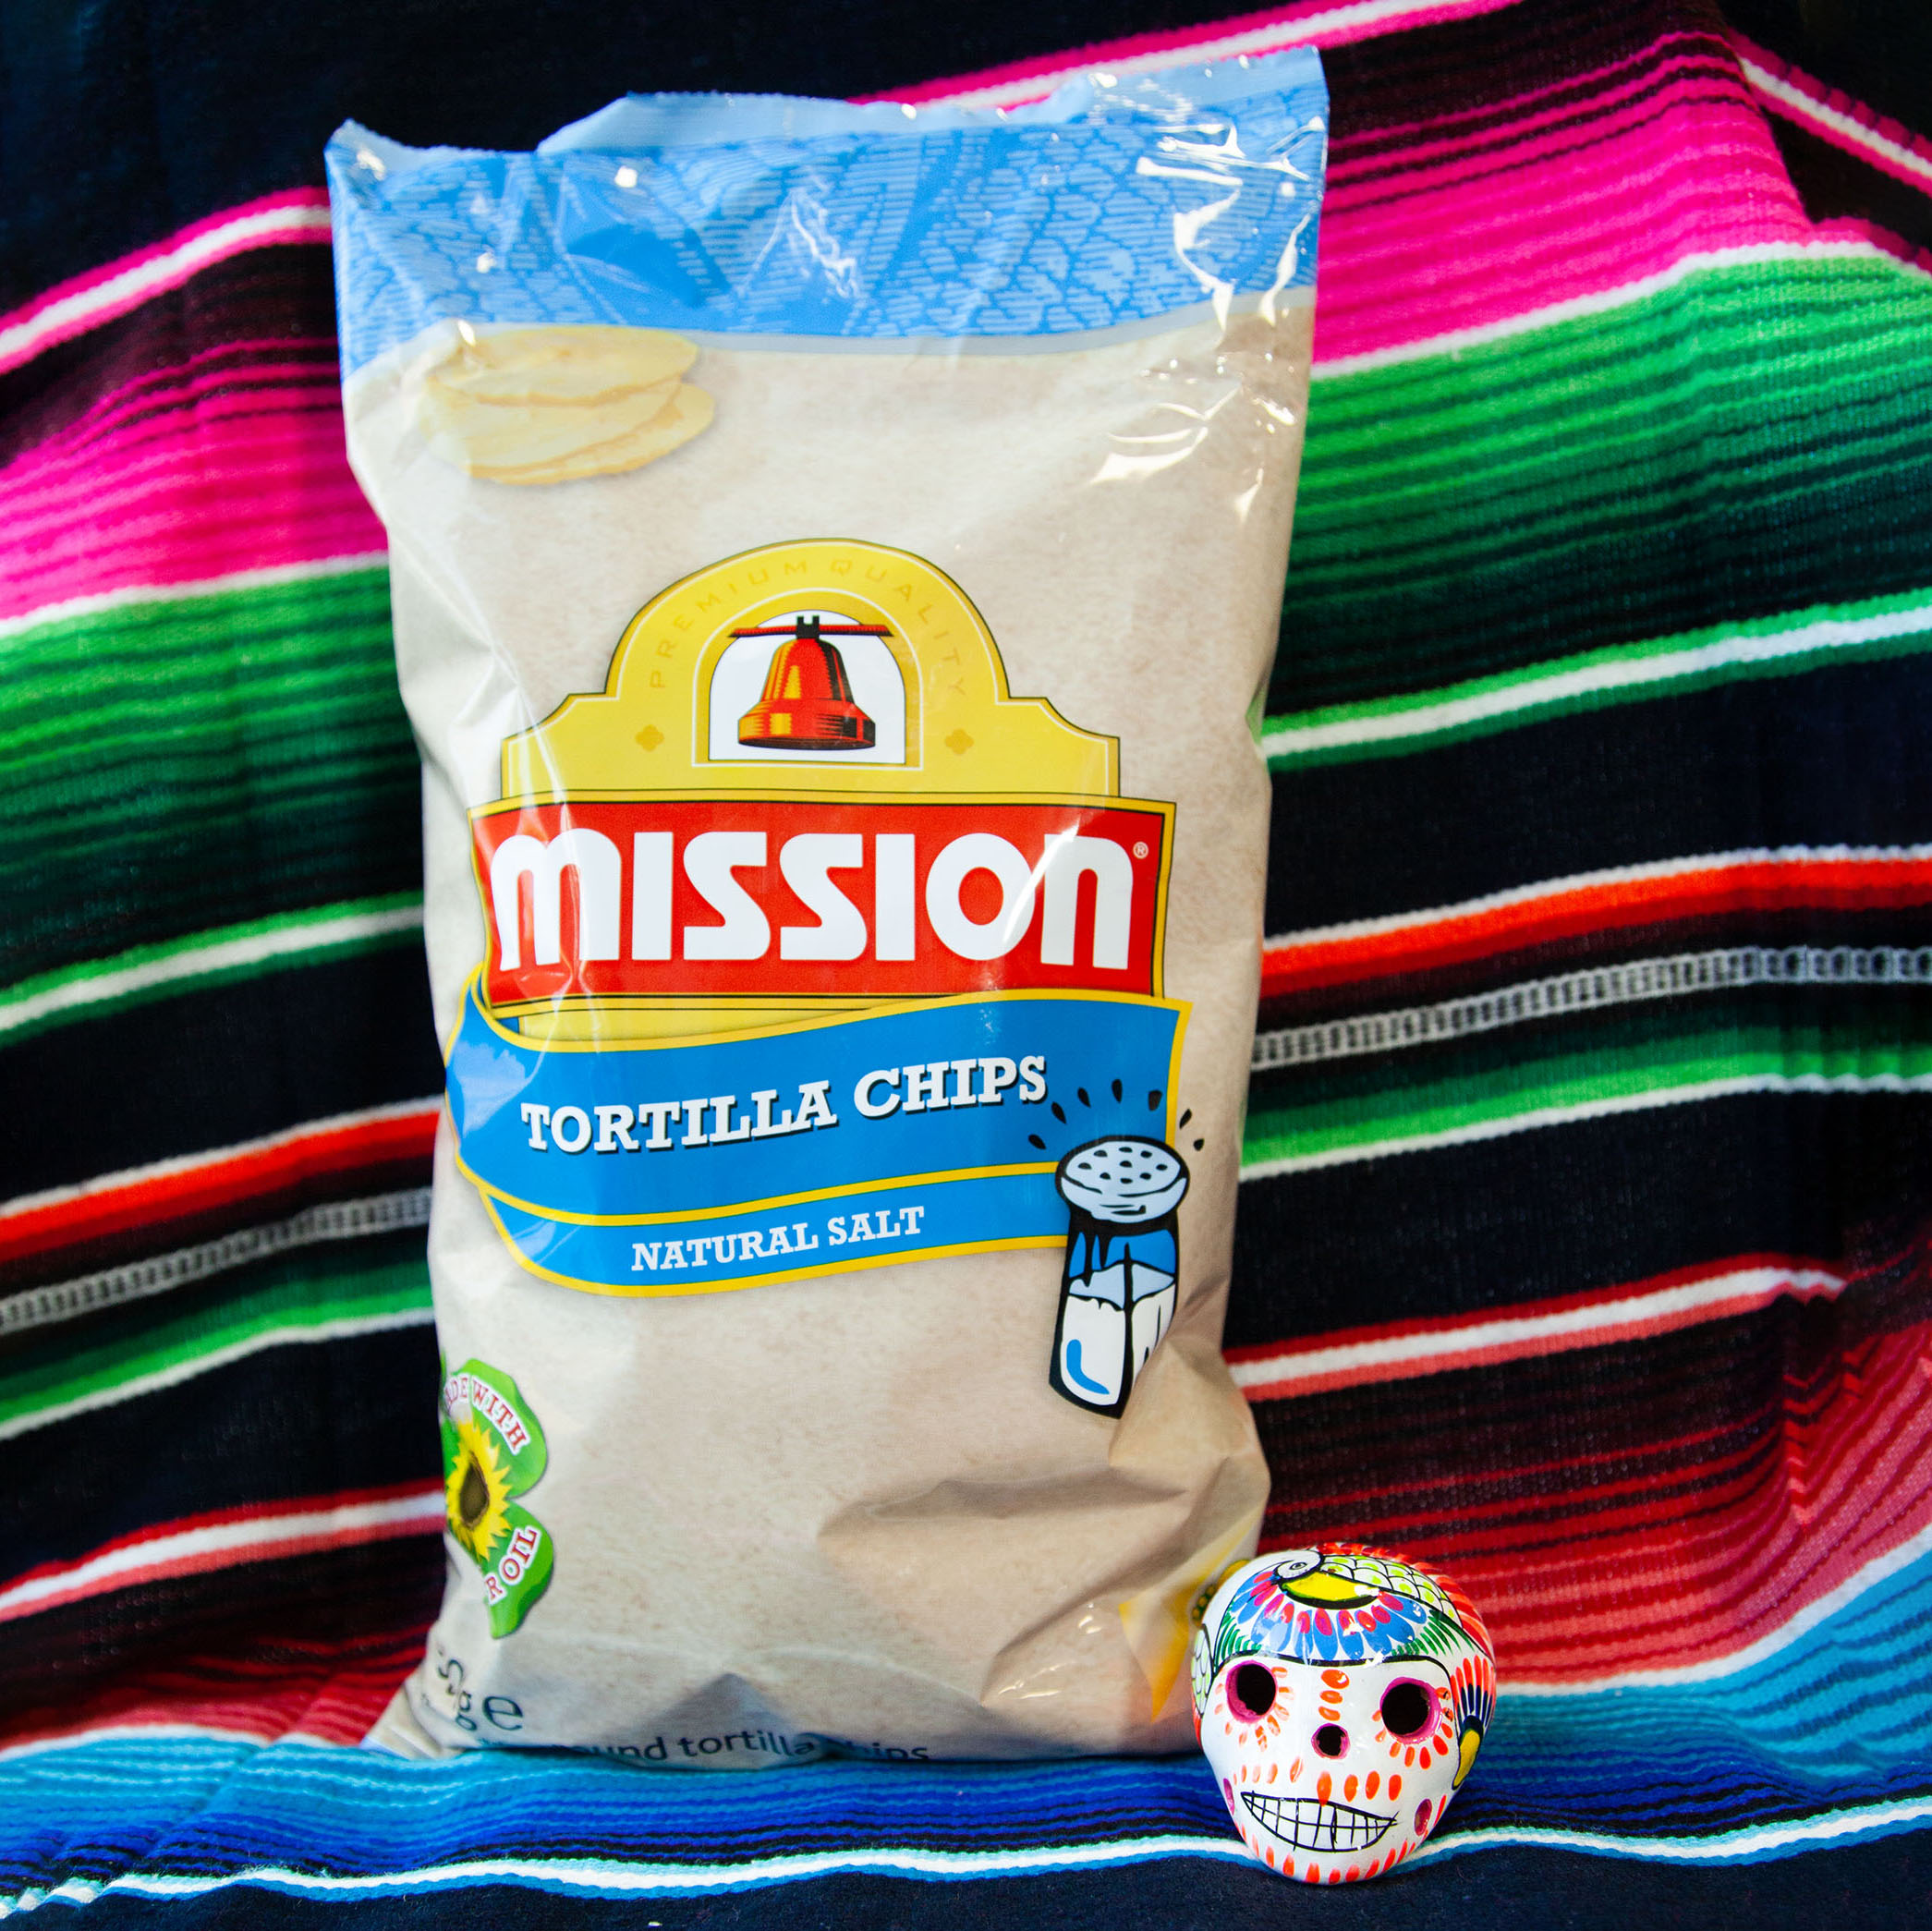 Round Tortillas Chips Mission